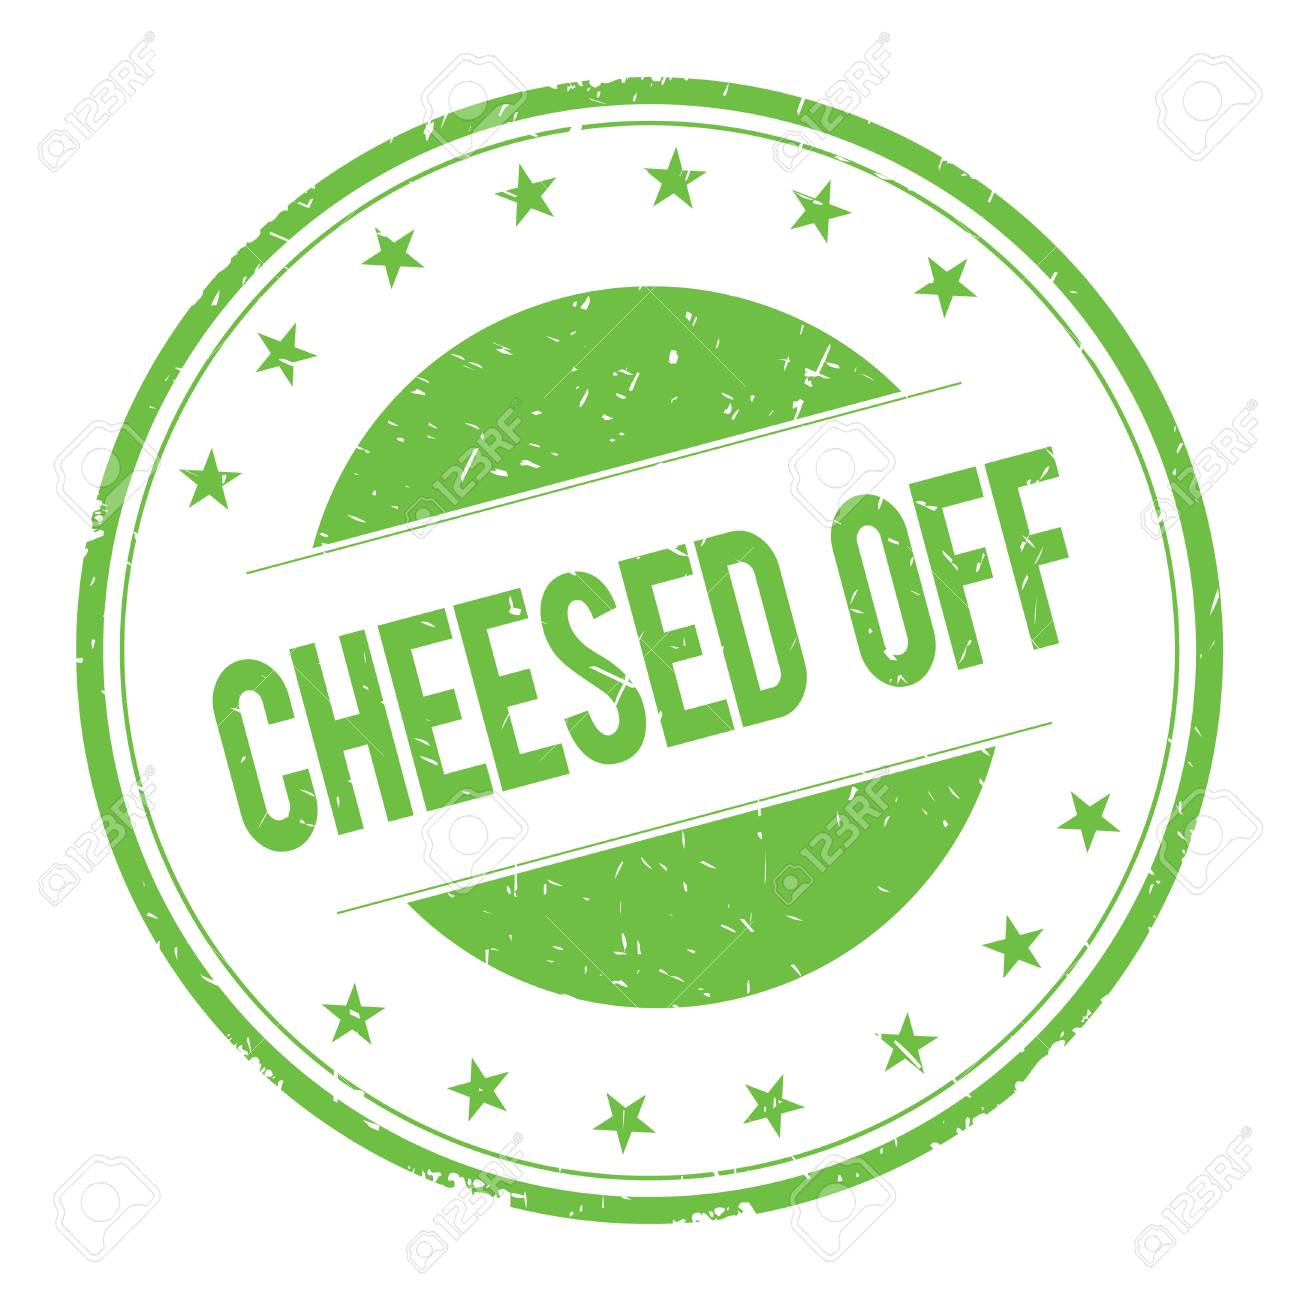 cheesed off stamp sign text word logo green stock photo 67603068